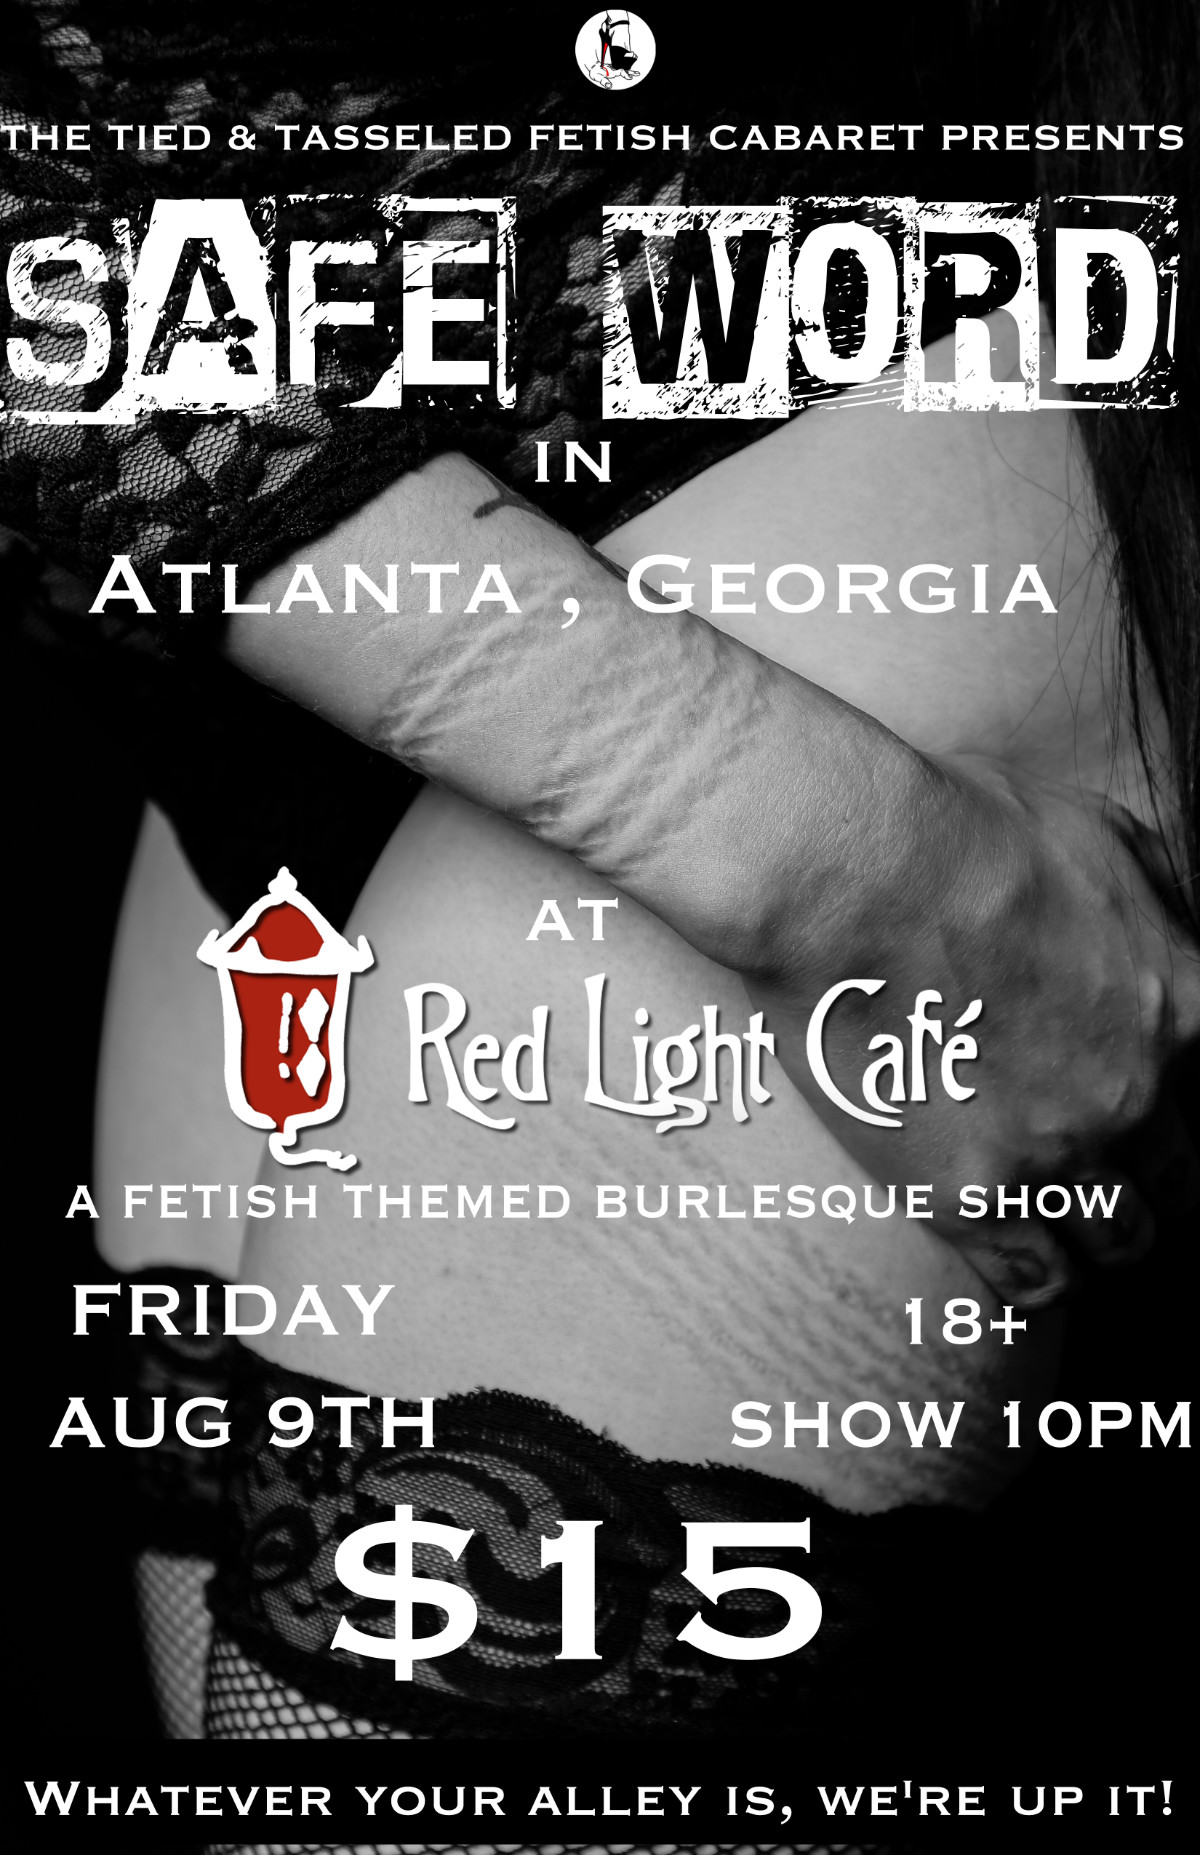 SAFE WORD: A Fetish Themed Burlesque Show presented by The Tied & Tasseled Fetish Cabaret — August 9, 2019 — Red Light Café, Atlanta, GA